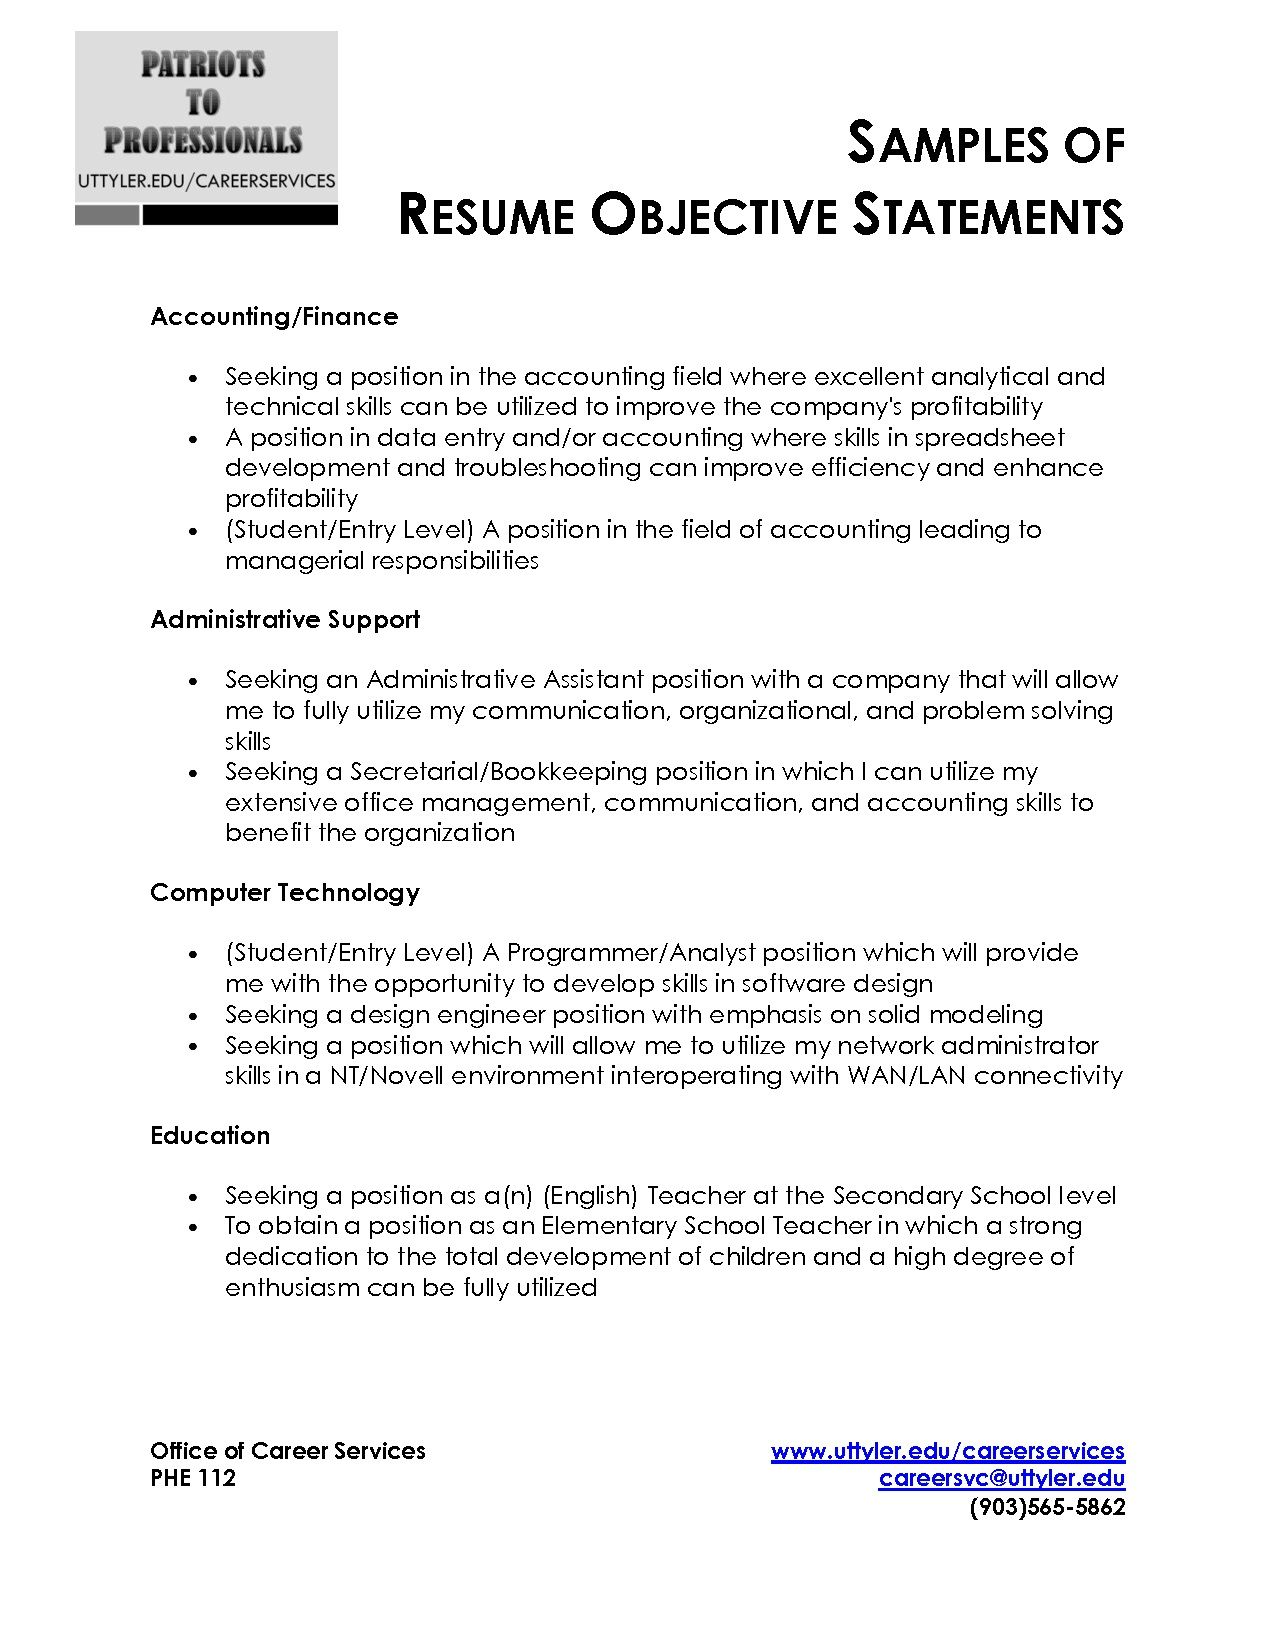 good objective statements for a resumes